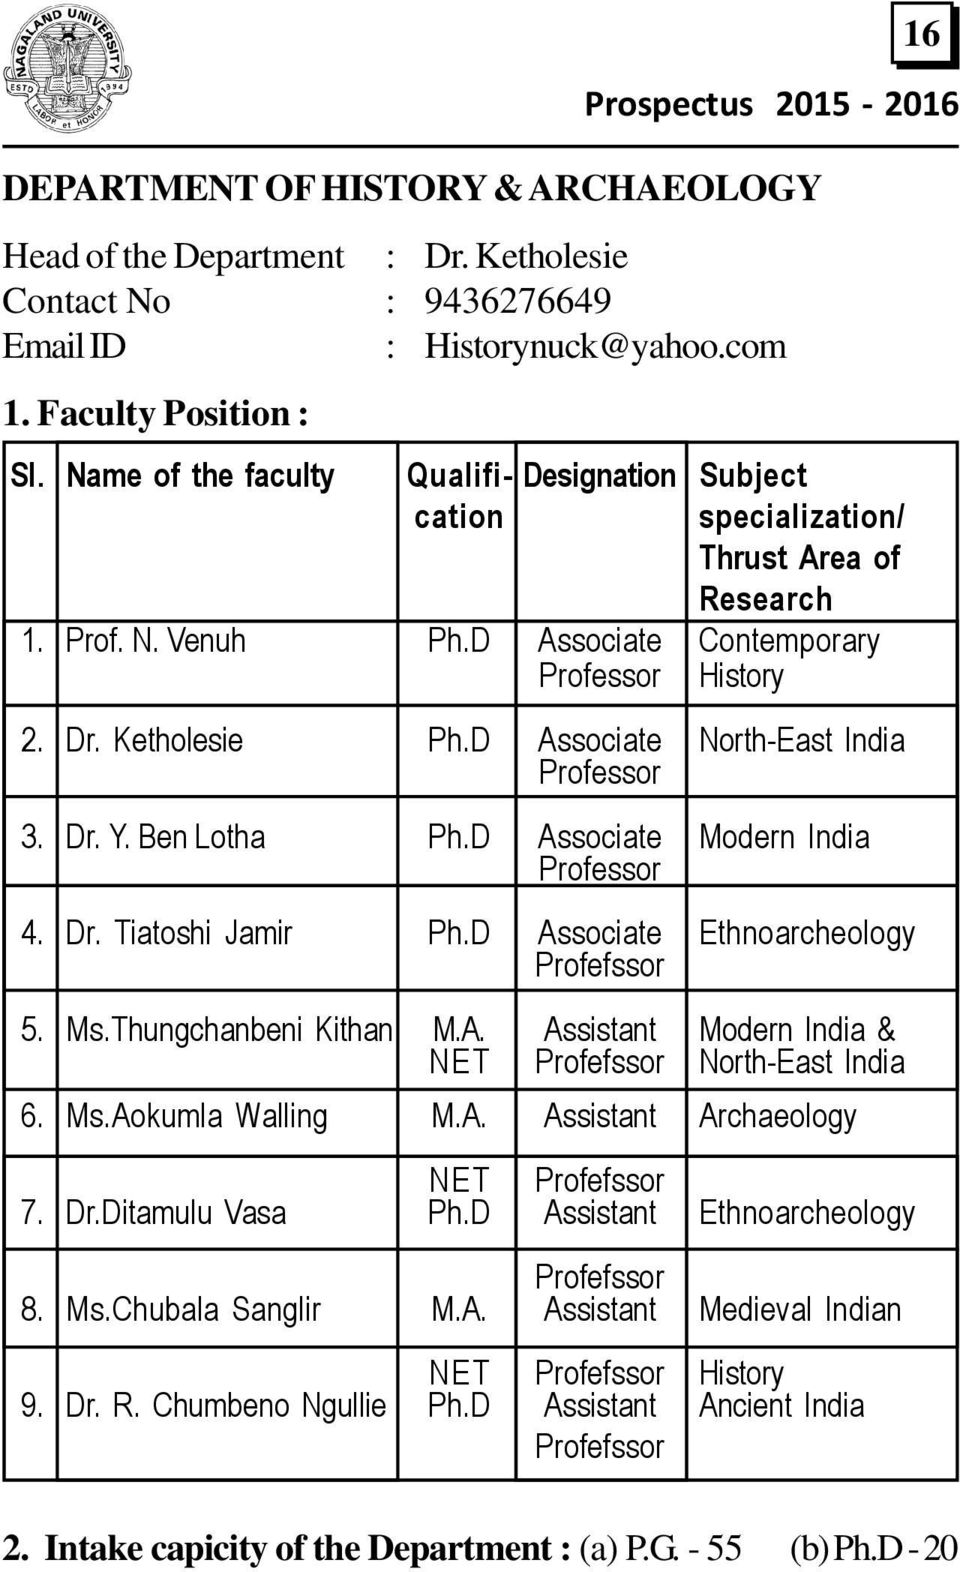 D Associate North-East India Professor 3. Dr. Y. Ben Lotha Ph.D Associate Modern India Professor 4. Dr. Tiatoshi Jamir Ph.D Associate Ethnoarcheology Profefssor 5. Ms.Thungchanbeni Kithan M.A. Assistant Modern India & NET Profefssor North-East India 6.